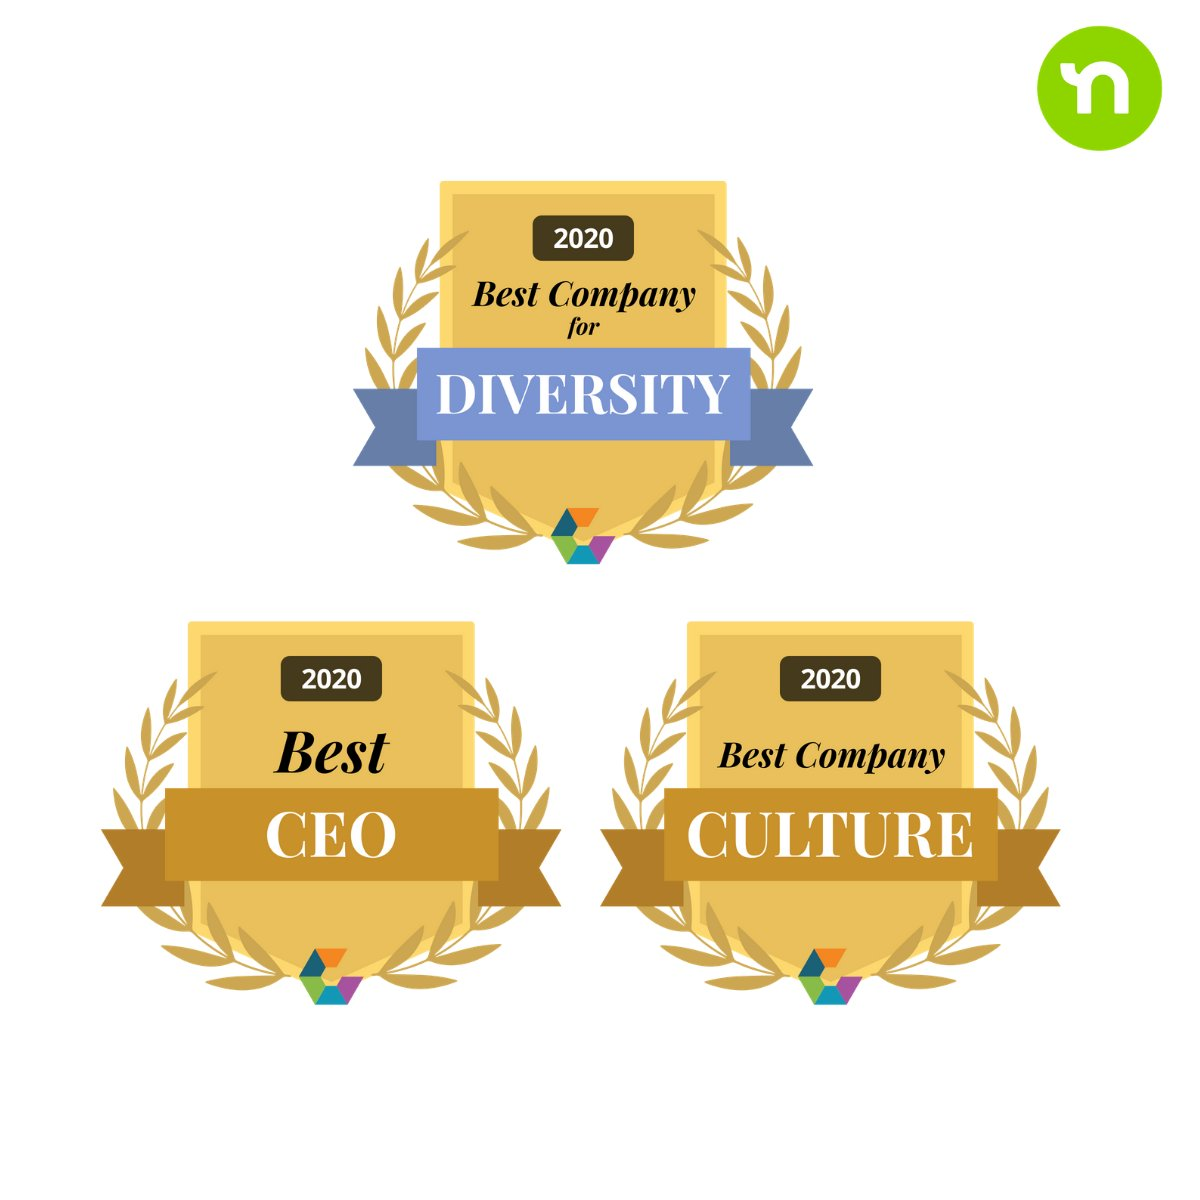 We are excited and proud to announce that #Nextdoor CEO @thefriley was named a winner of @Comparably's award for Best CEO this year. Also thrilled to be recognized for Best Company Culture and Best Company for Diversity.